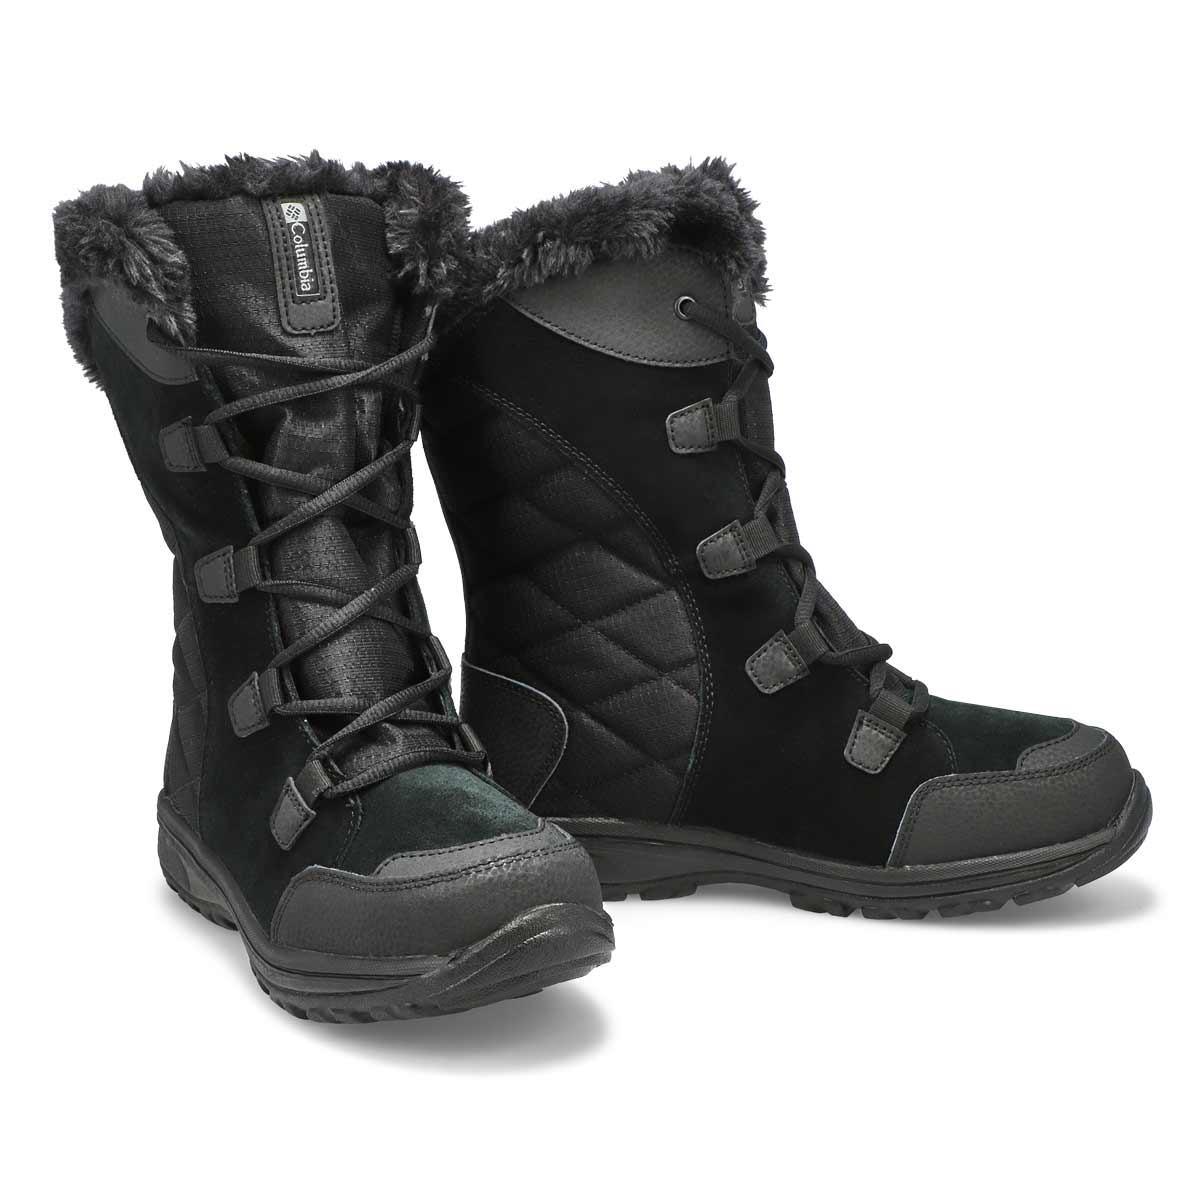 Lds Ice Maiden II black lace up wtr boot